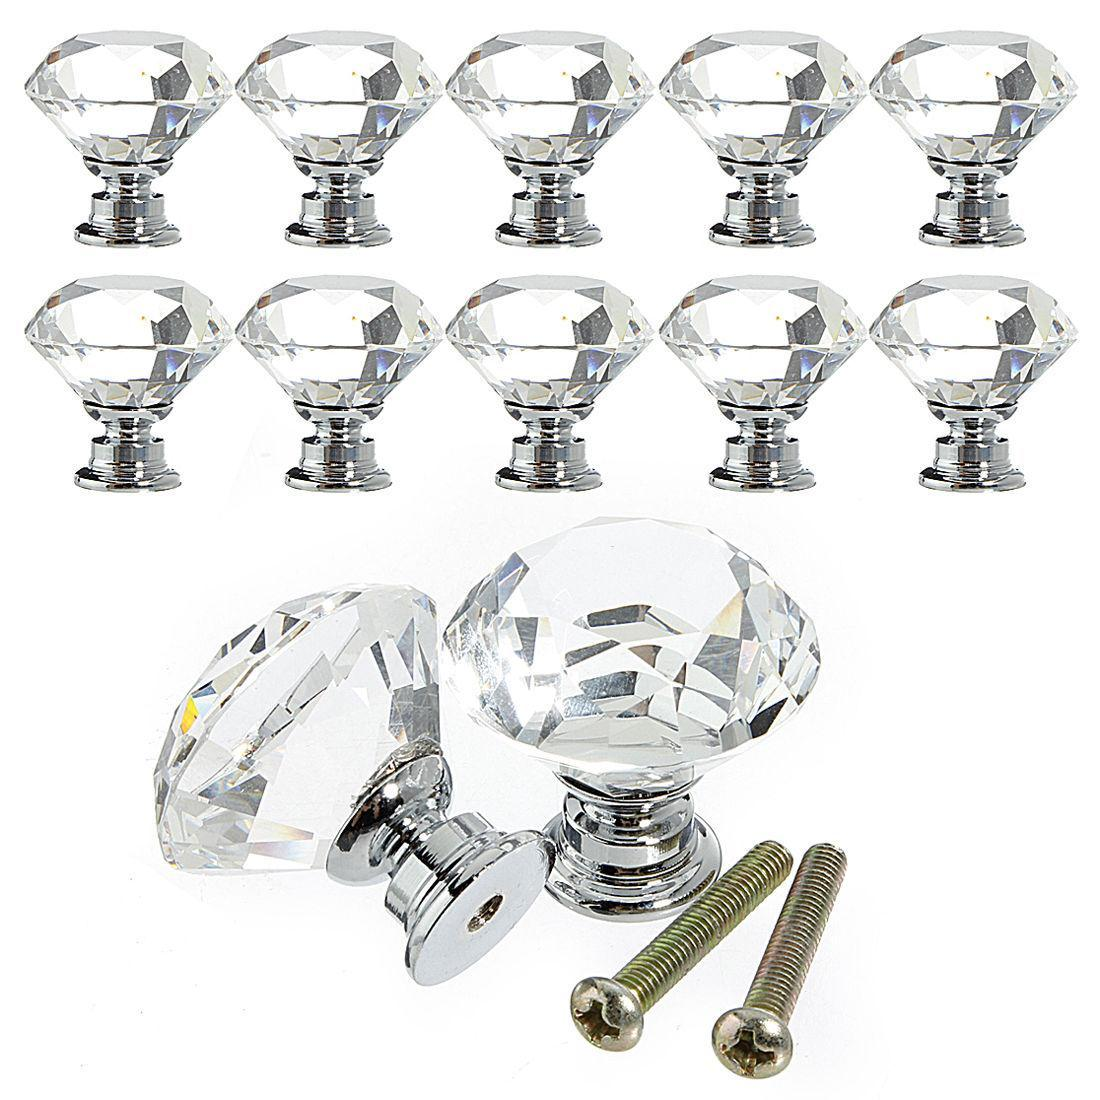 Hot 30mm Diamond Crystal Acrylic Door Drawer Cabinet Screw Pull Handle Knob  Kitchen Cabinet Handles Furniture Handle Hardware